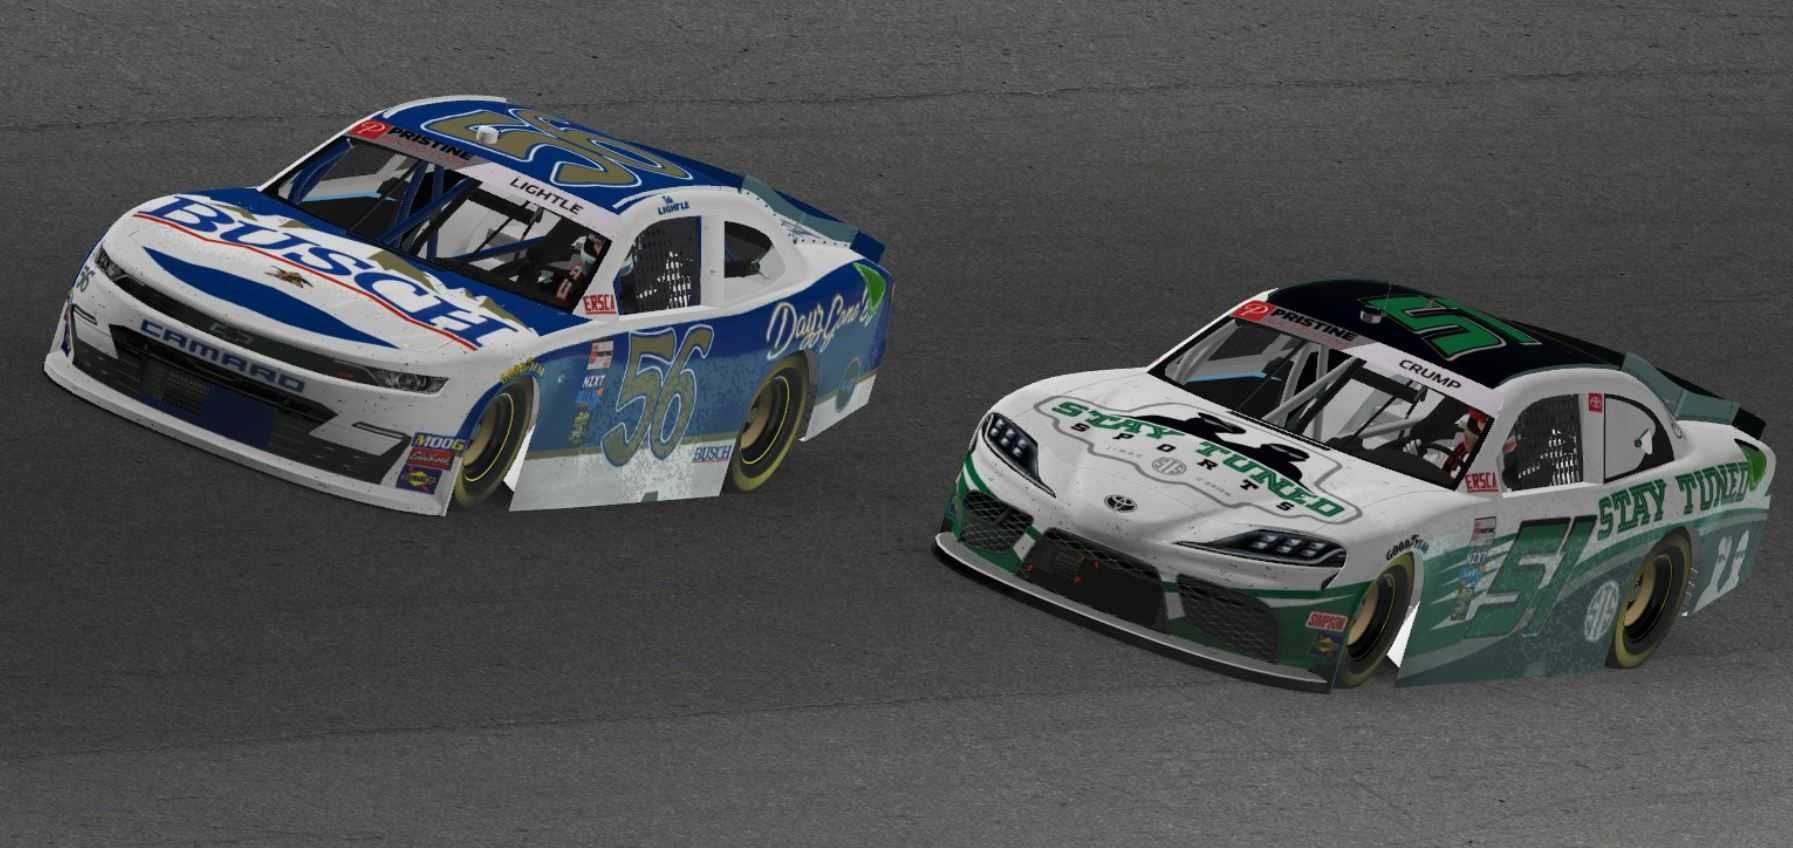 Crump Holds off Lightle for Second ERSCA Win